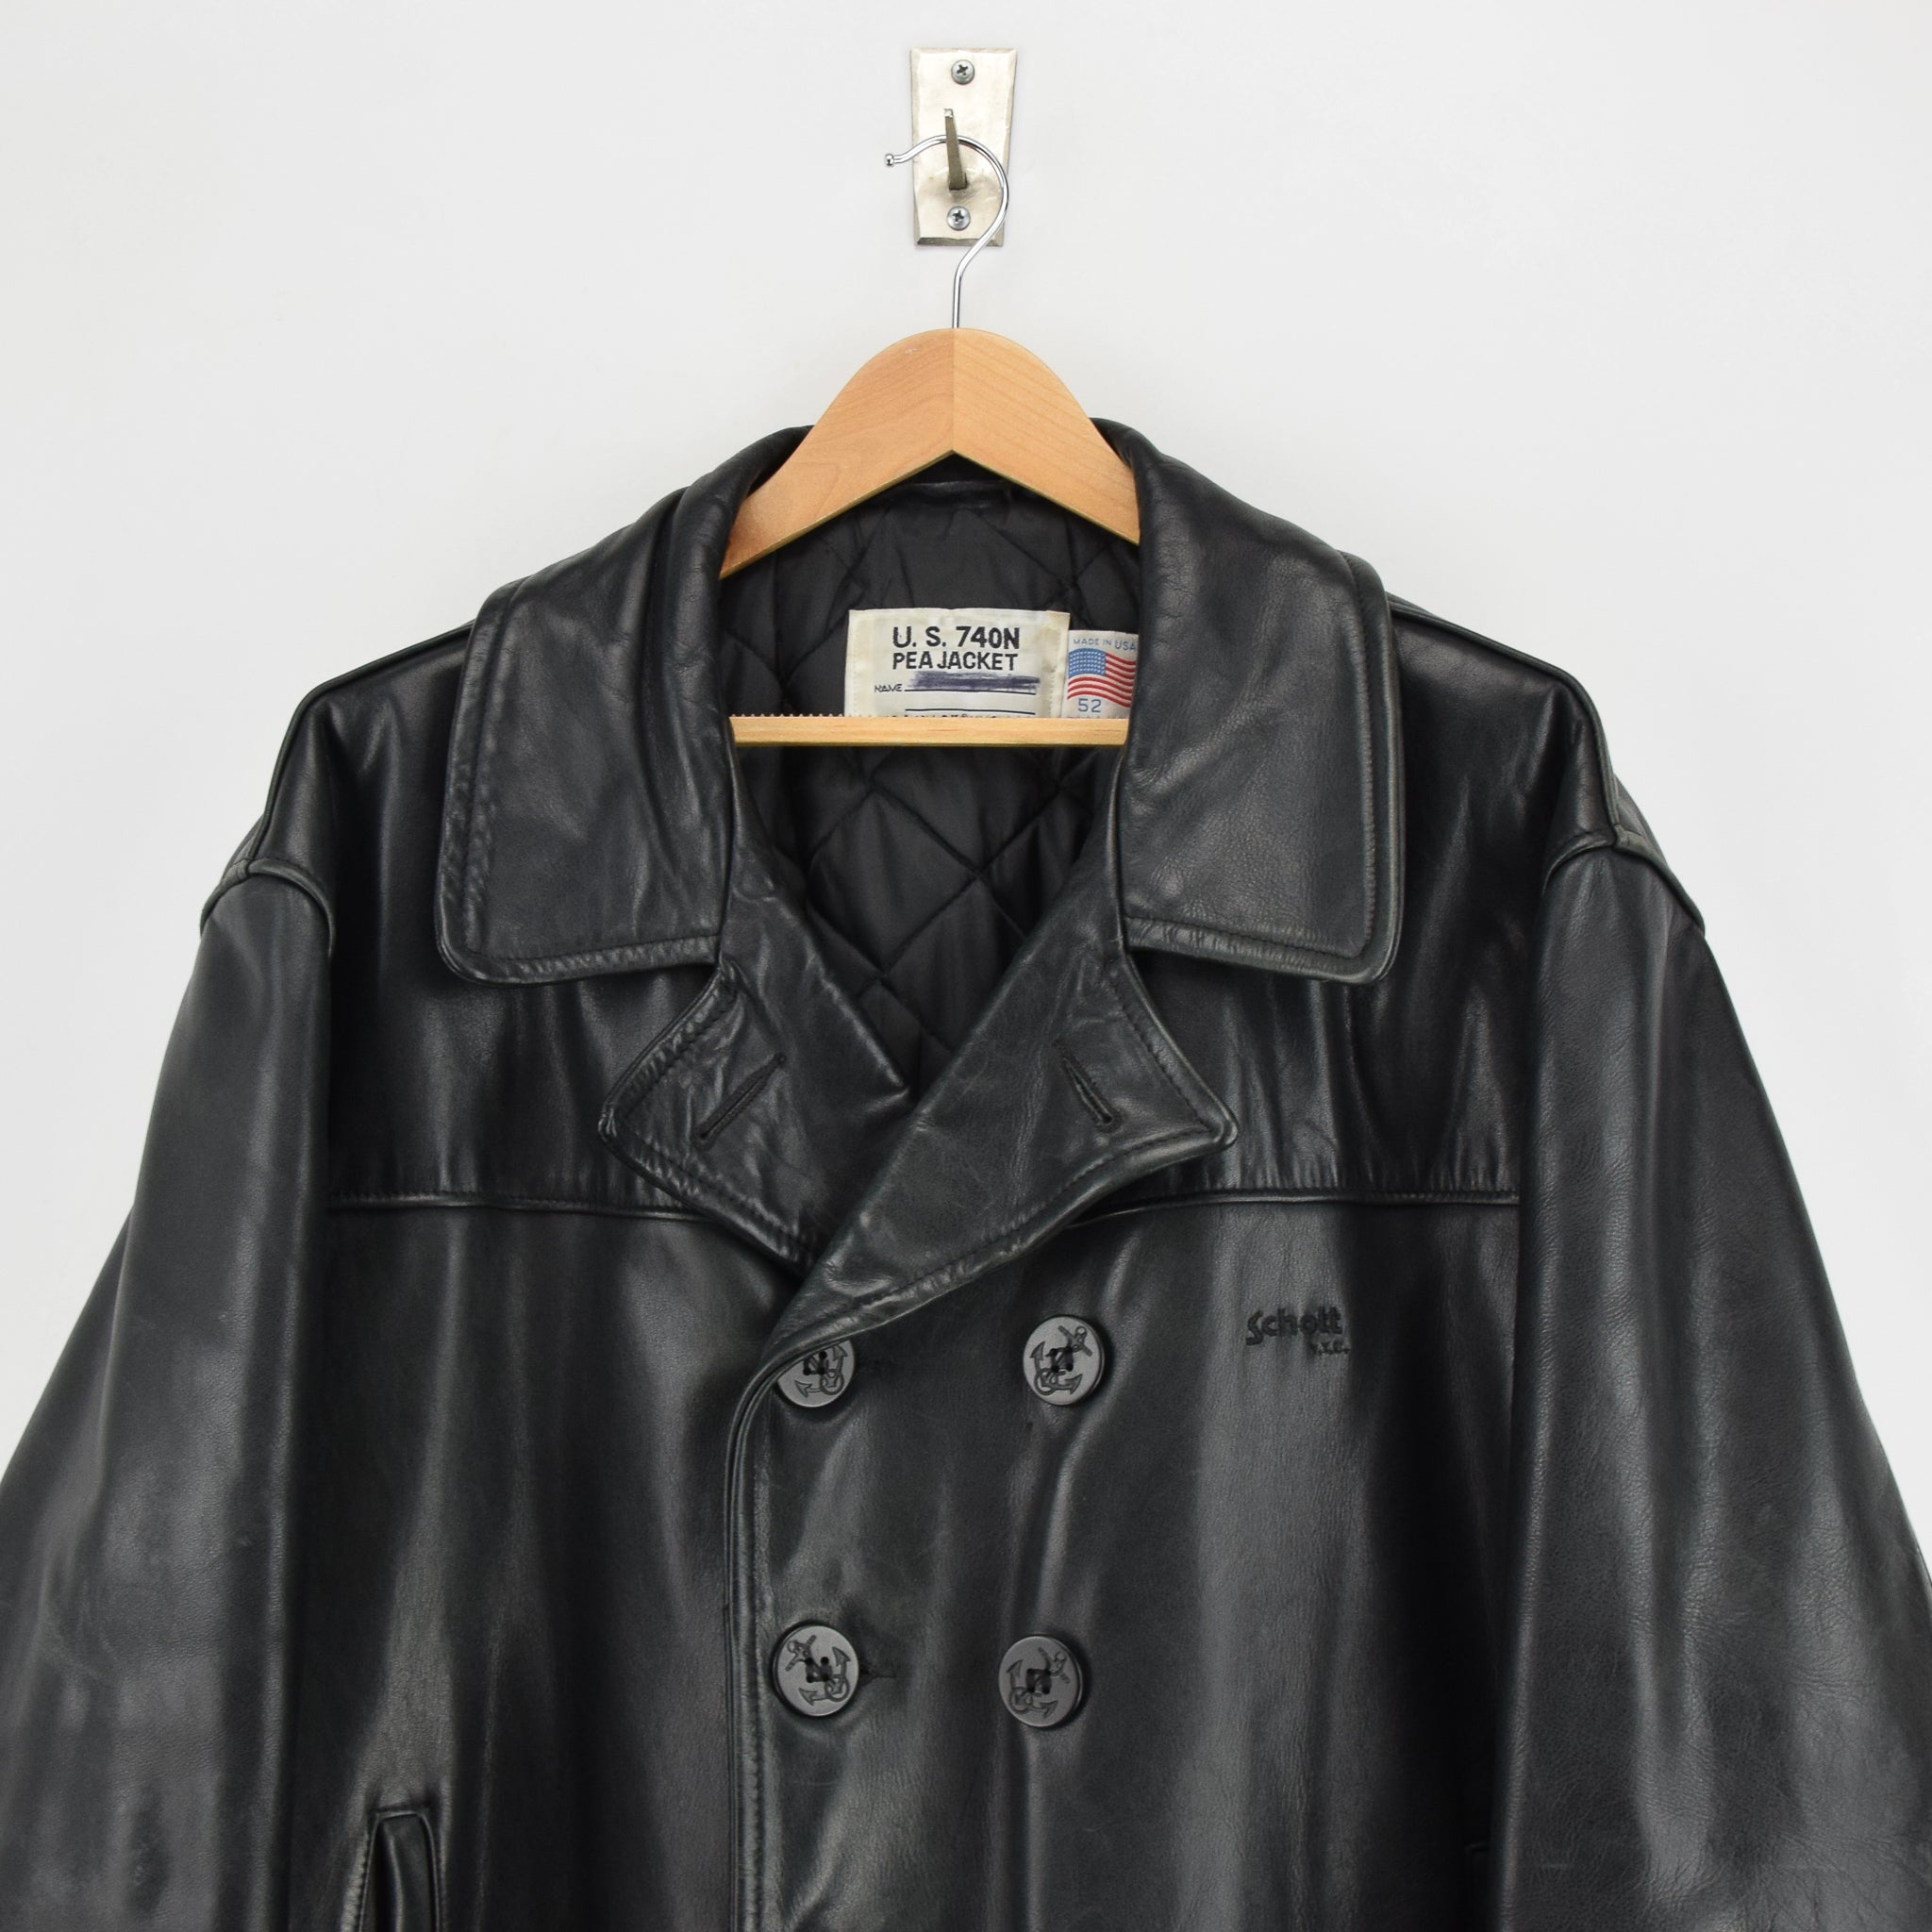 Vintage Schott NYC 740N Black Leather Pea Coat Reefer Jacket USA Made XXL / XXXL chest